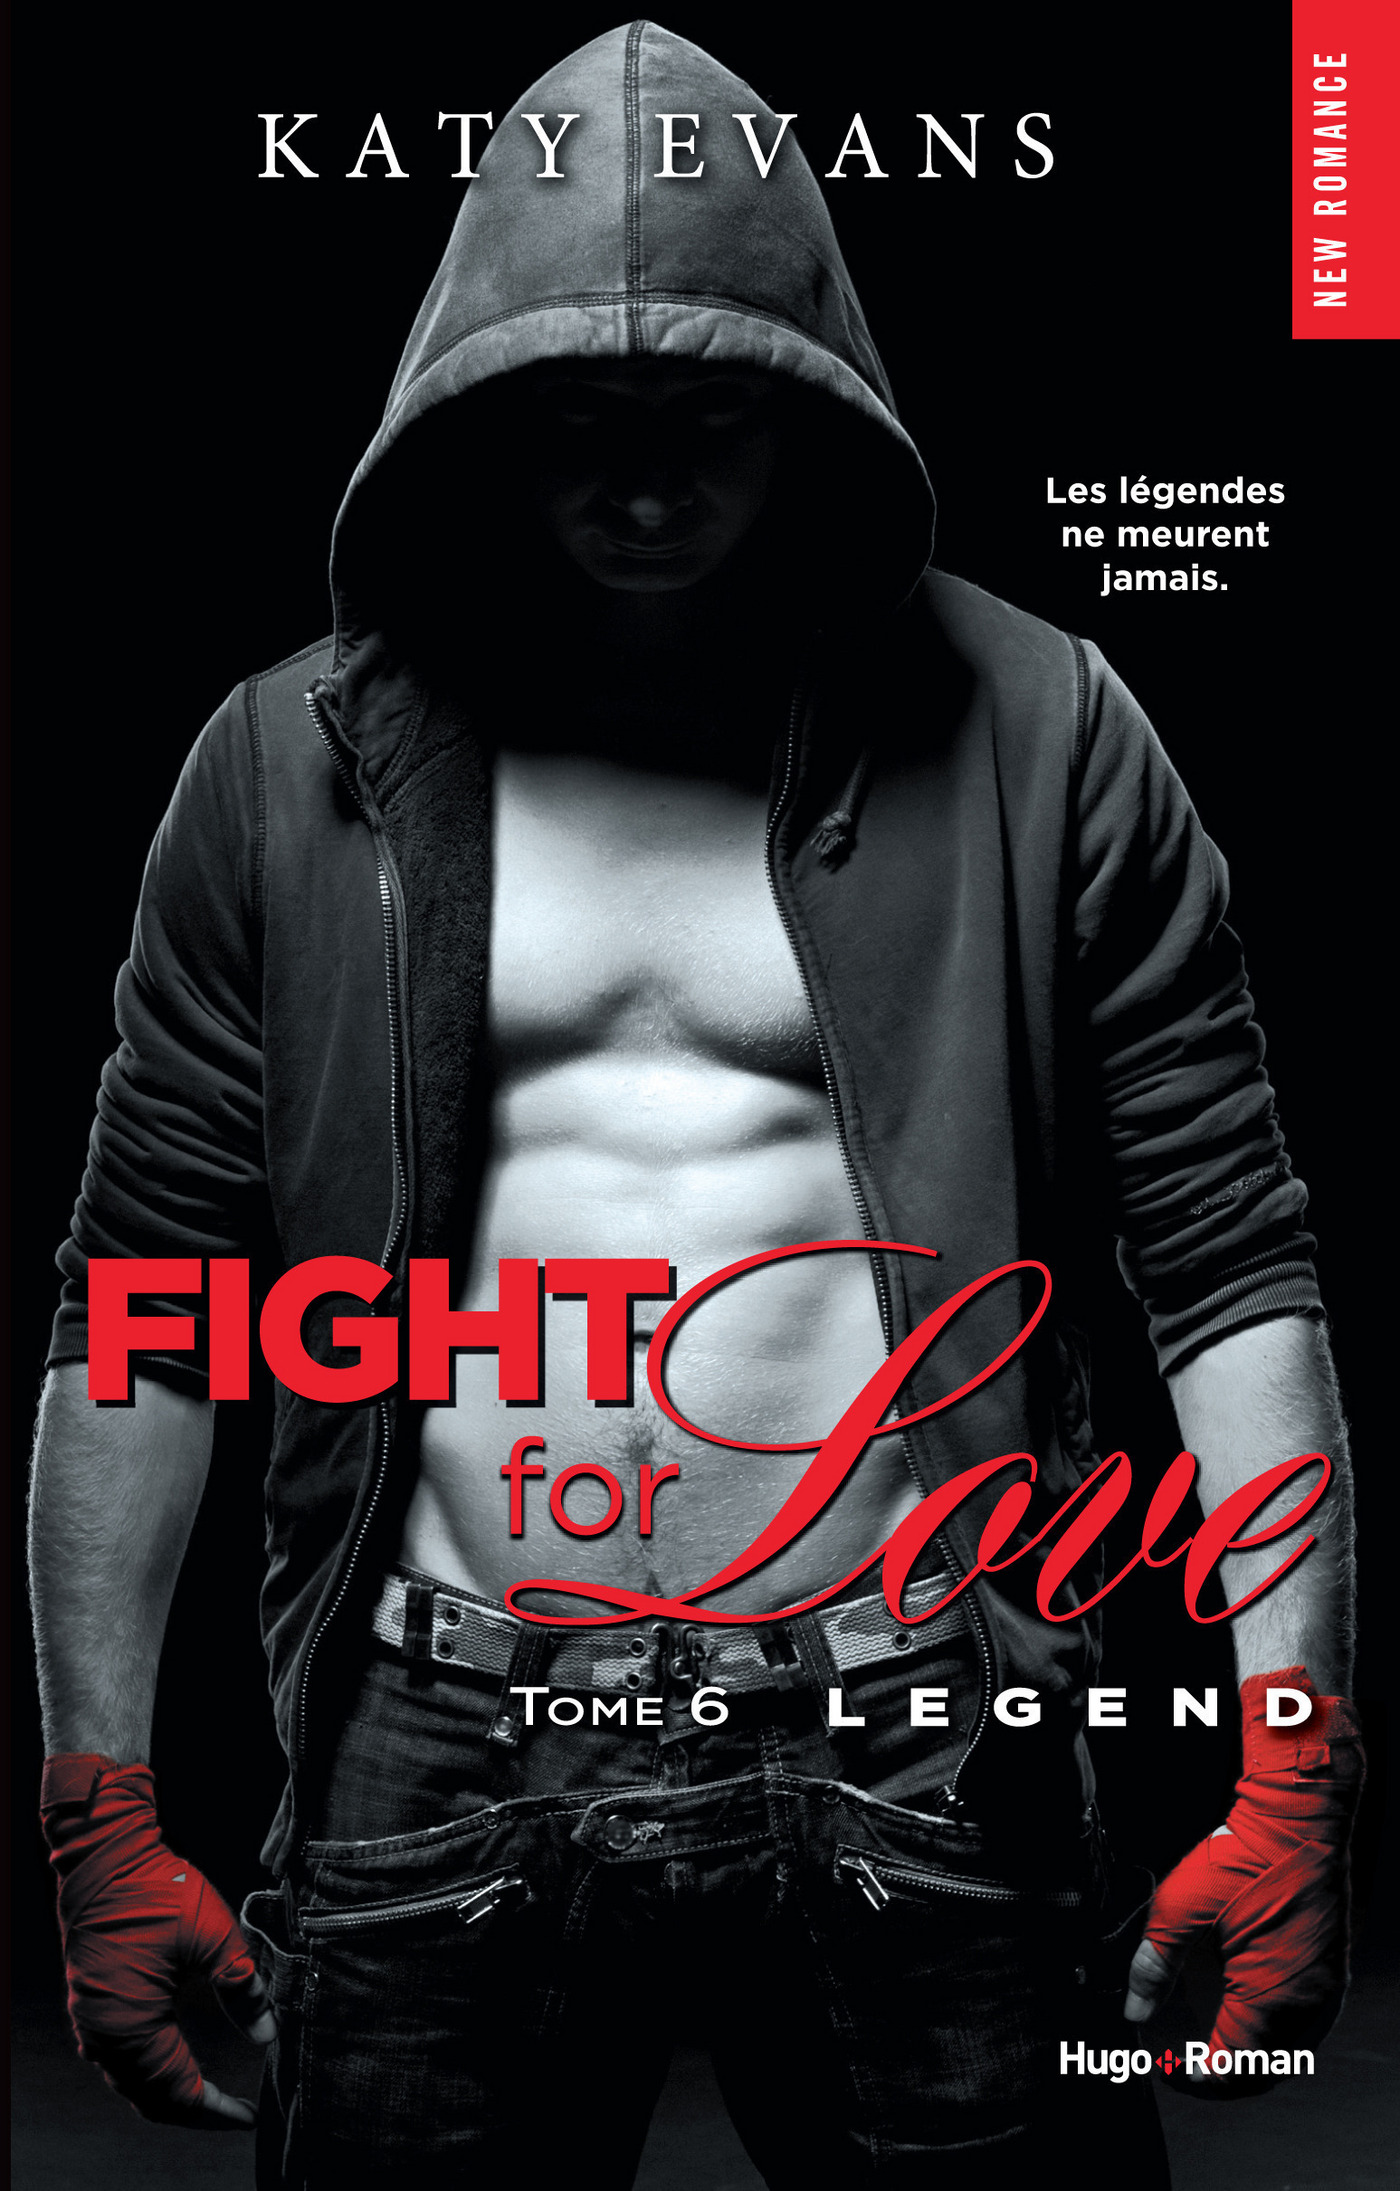 Fight for love - tome 6 Legend (ebook)